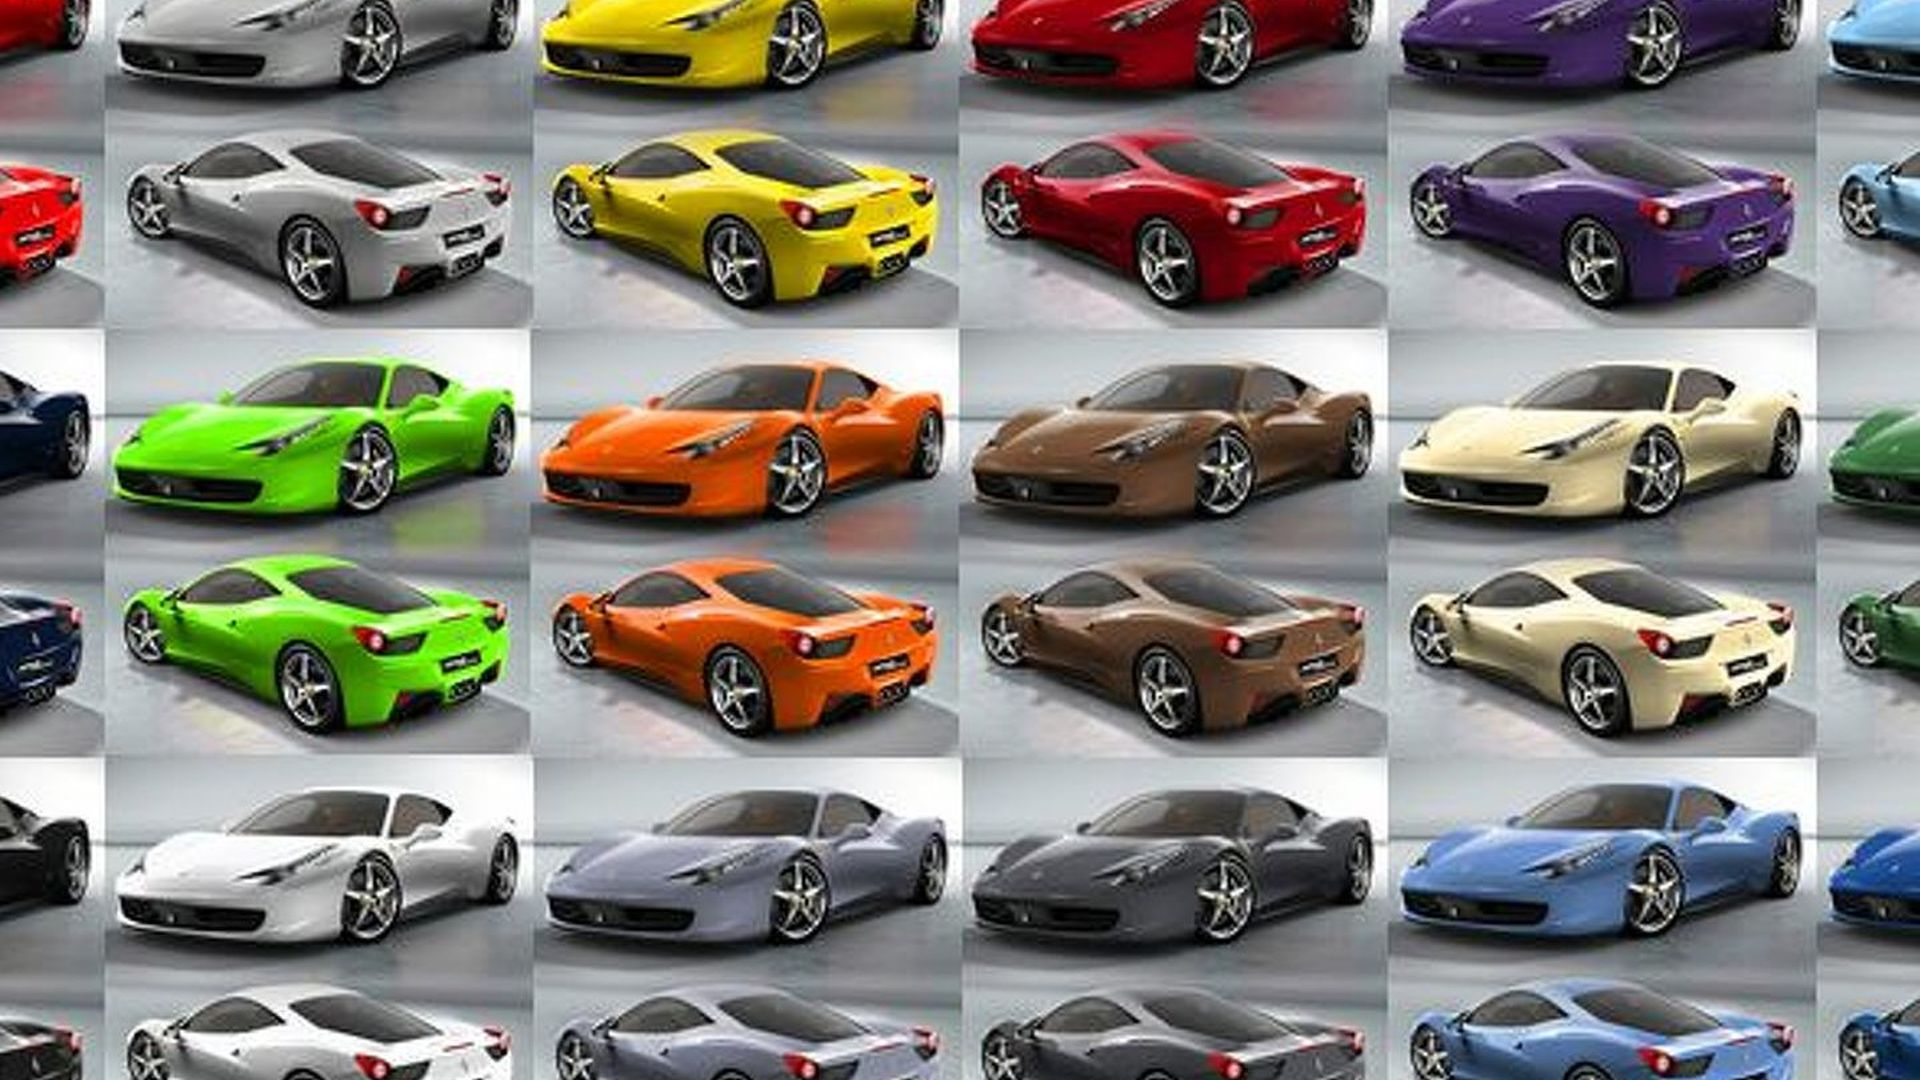 Ferrari 458 colors